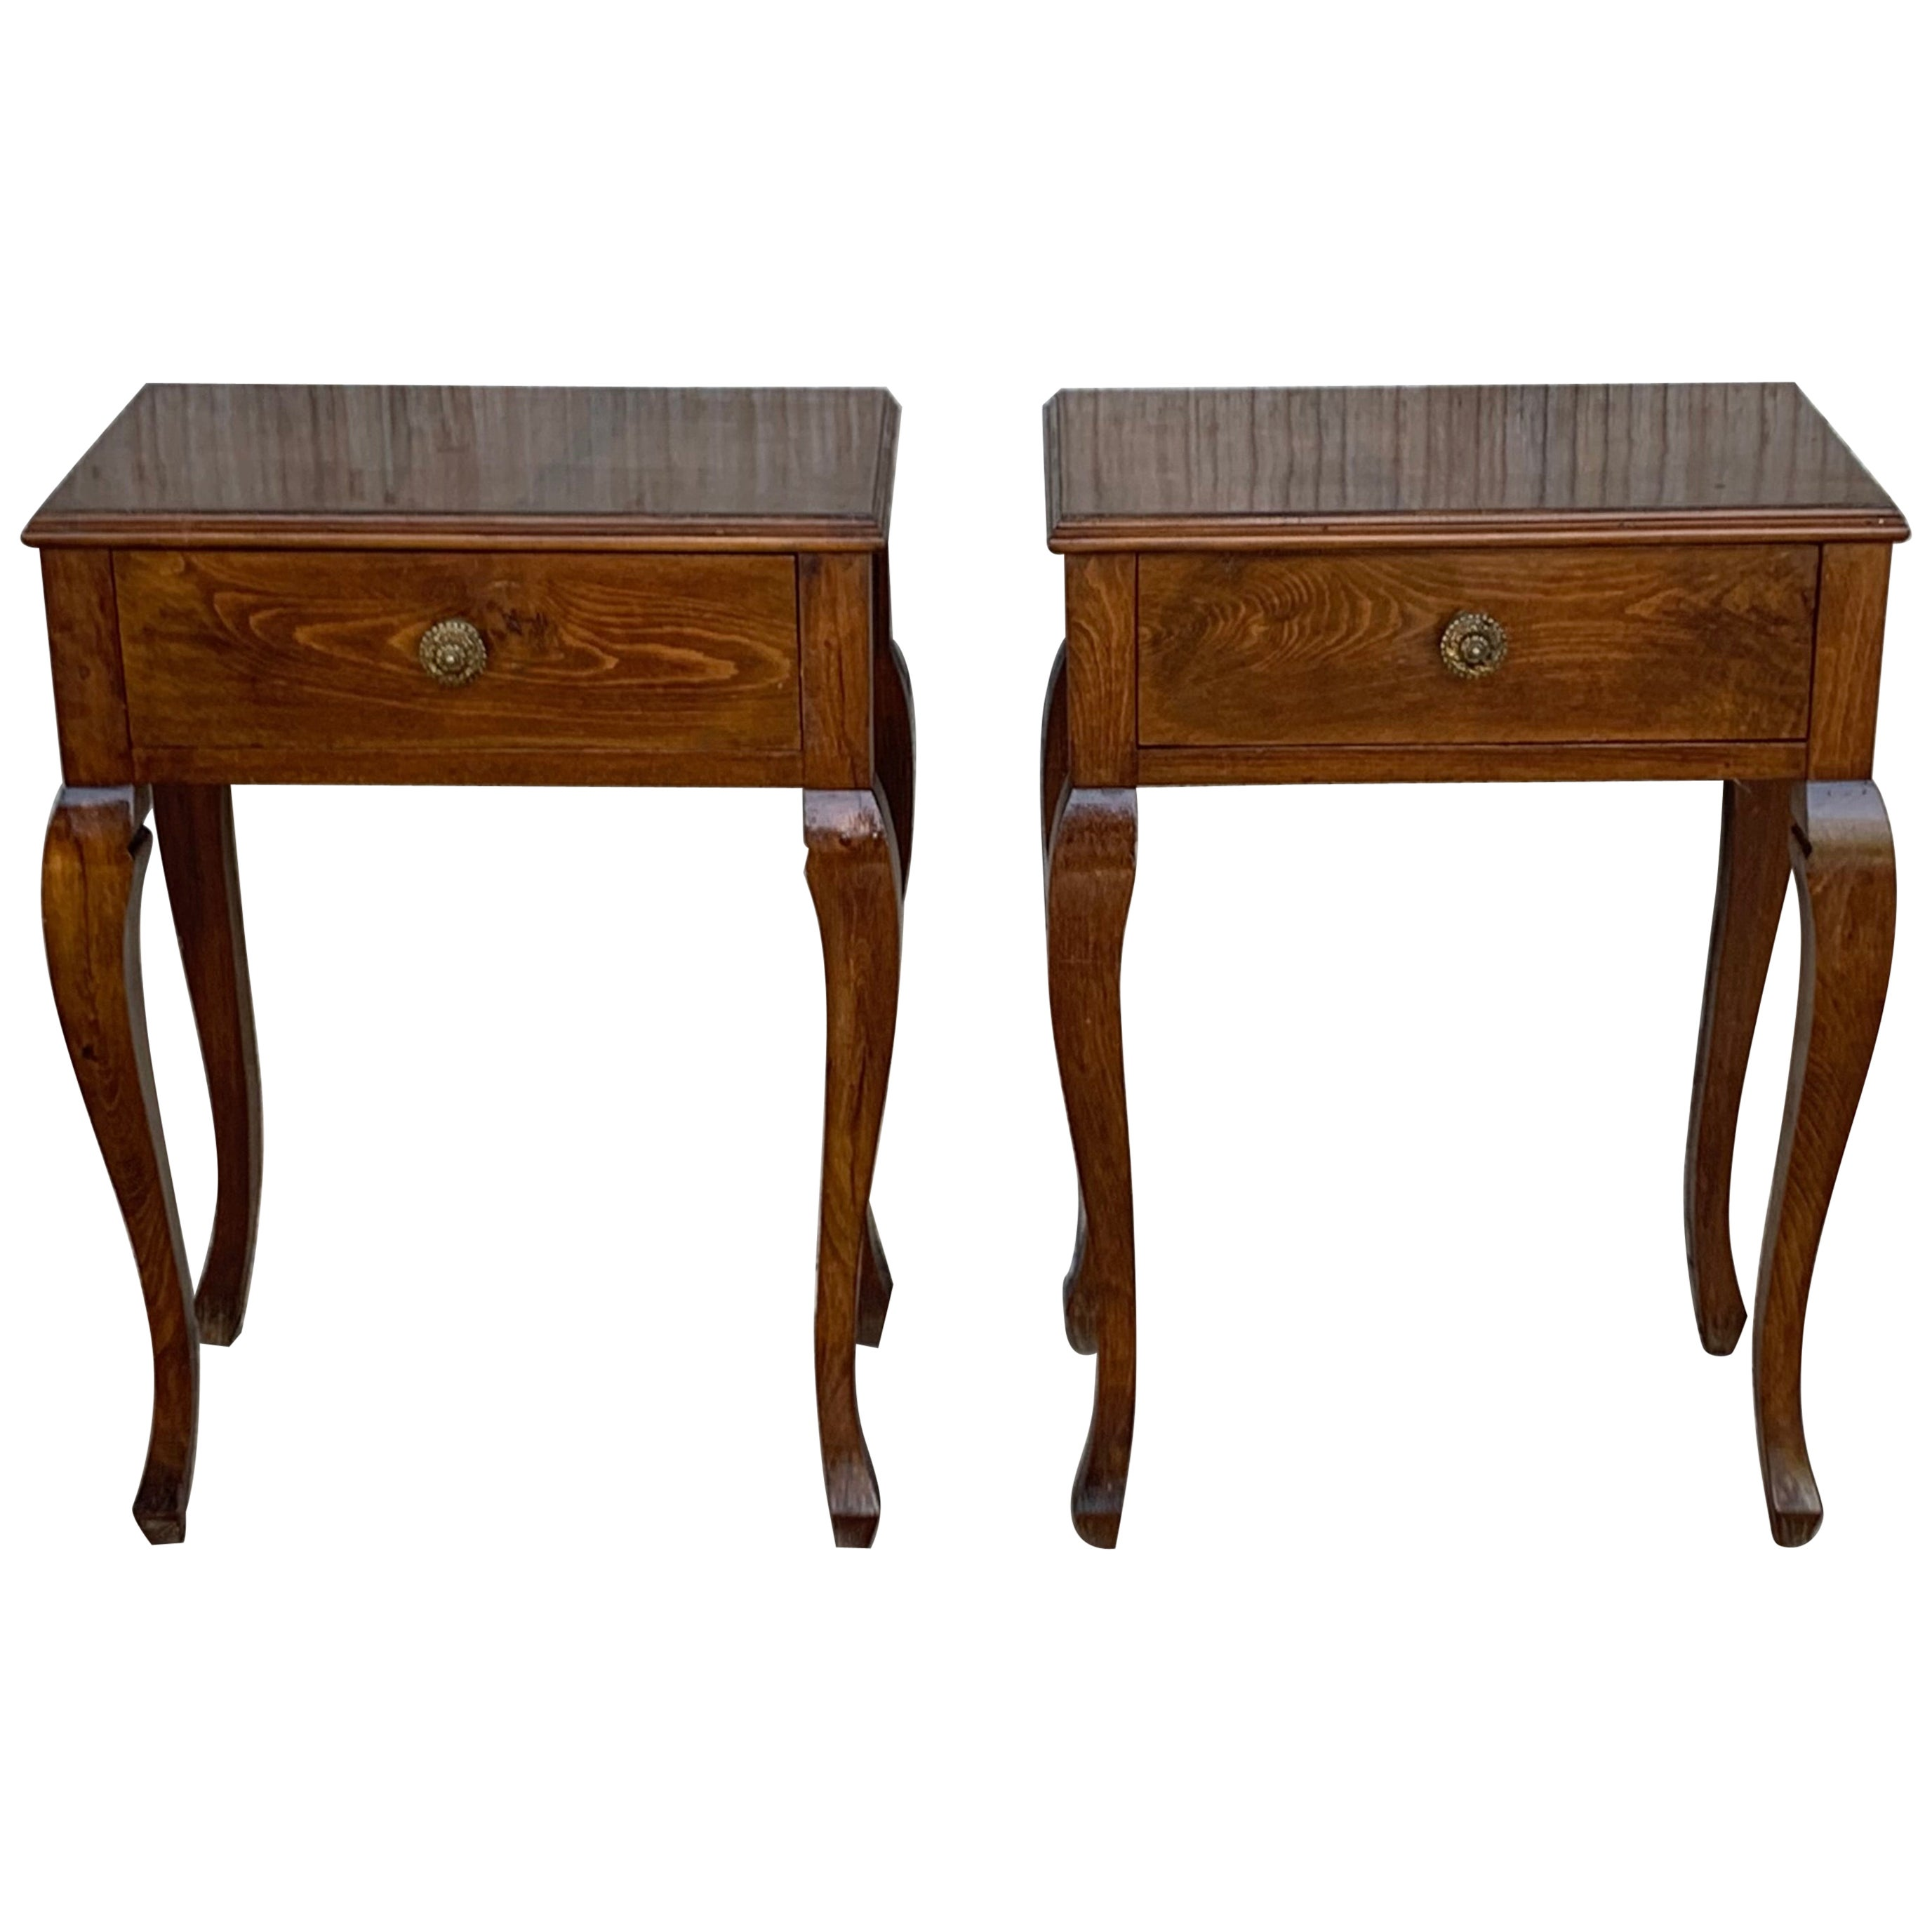 20th Pair of French Louis XV Style Walnut Bedside Tables with Drawer